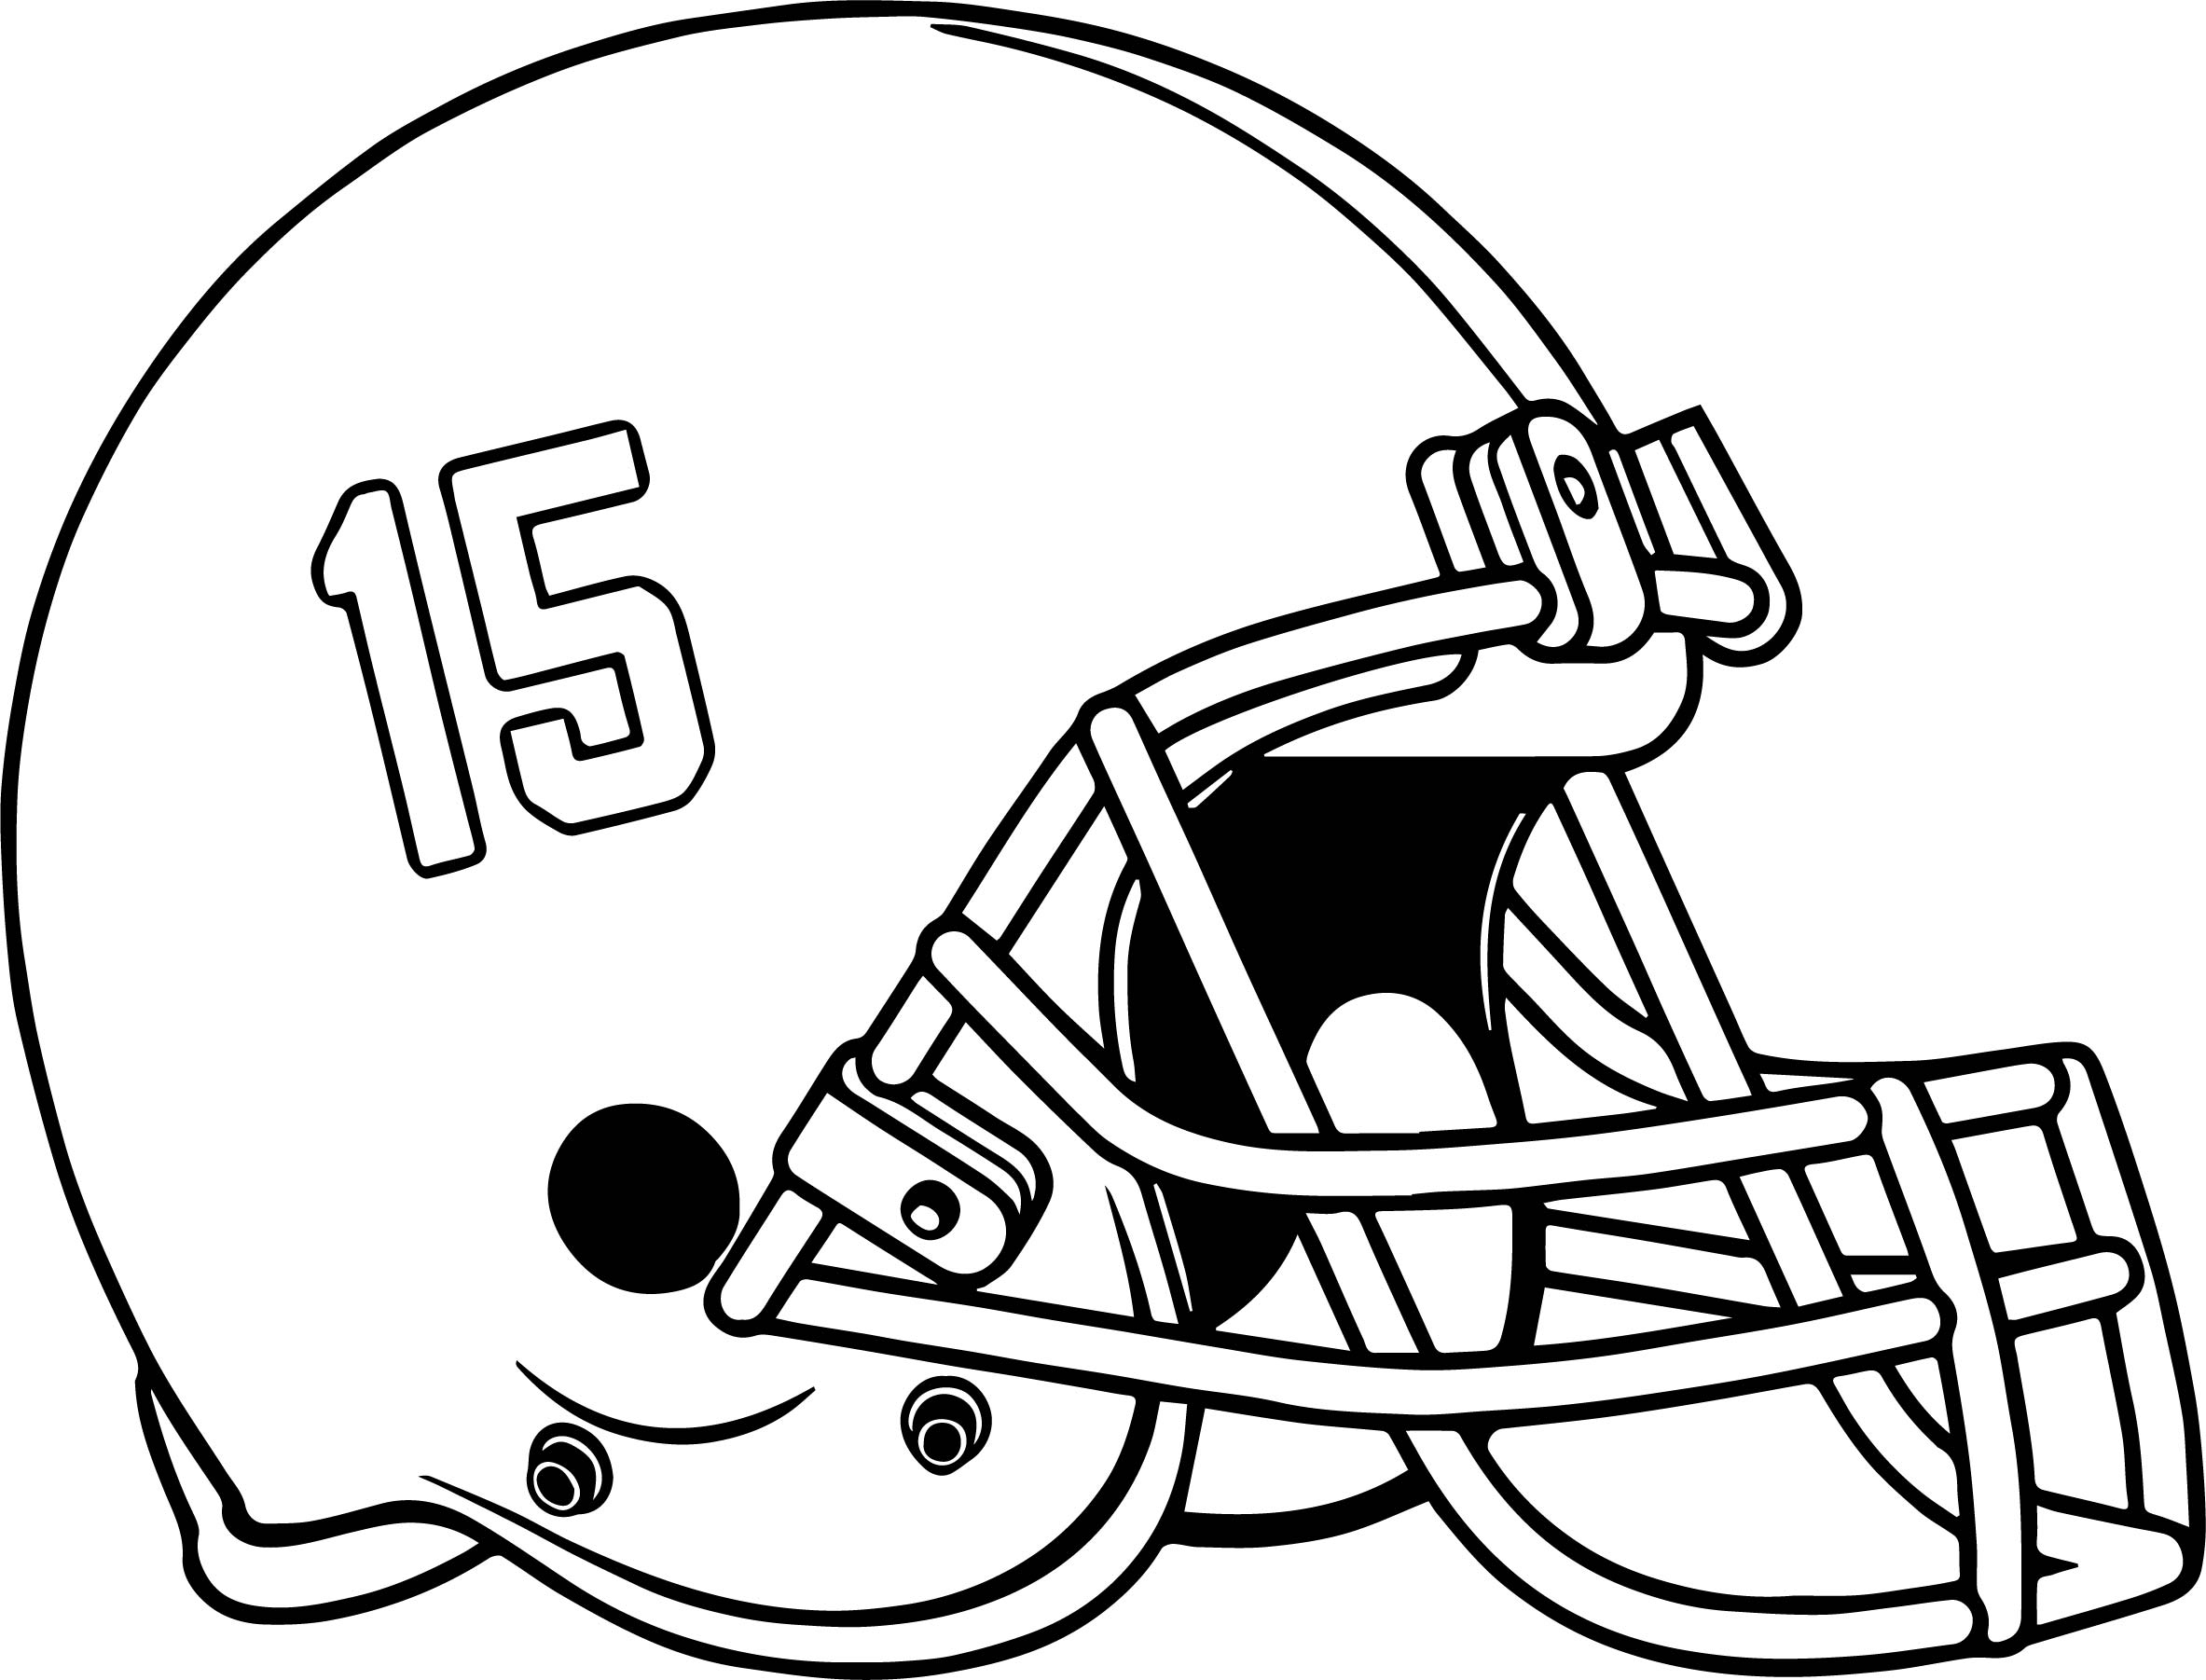 2366x1802 New Alabama Football Coloring Pages Inofations For Your Design